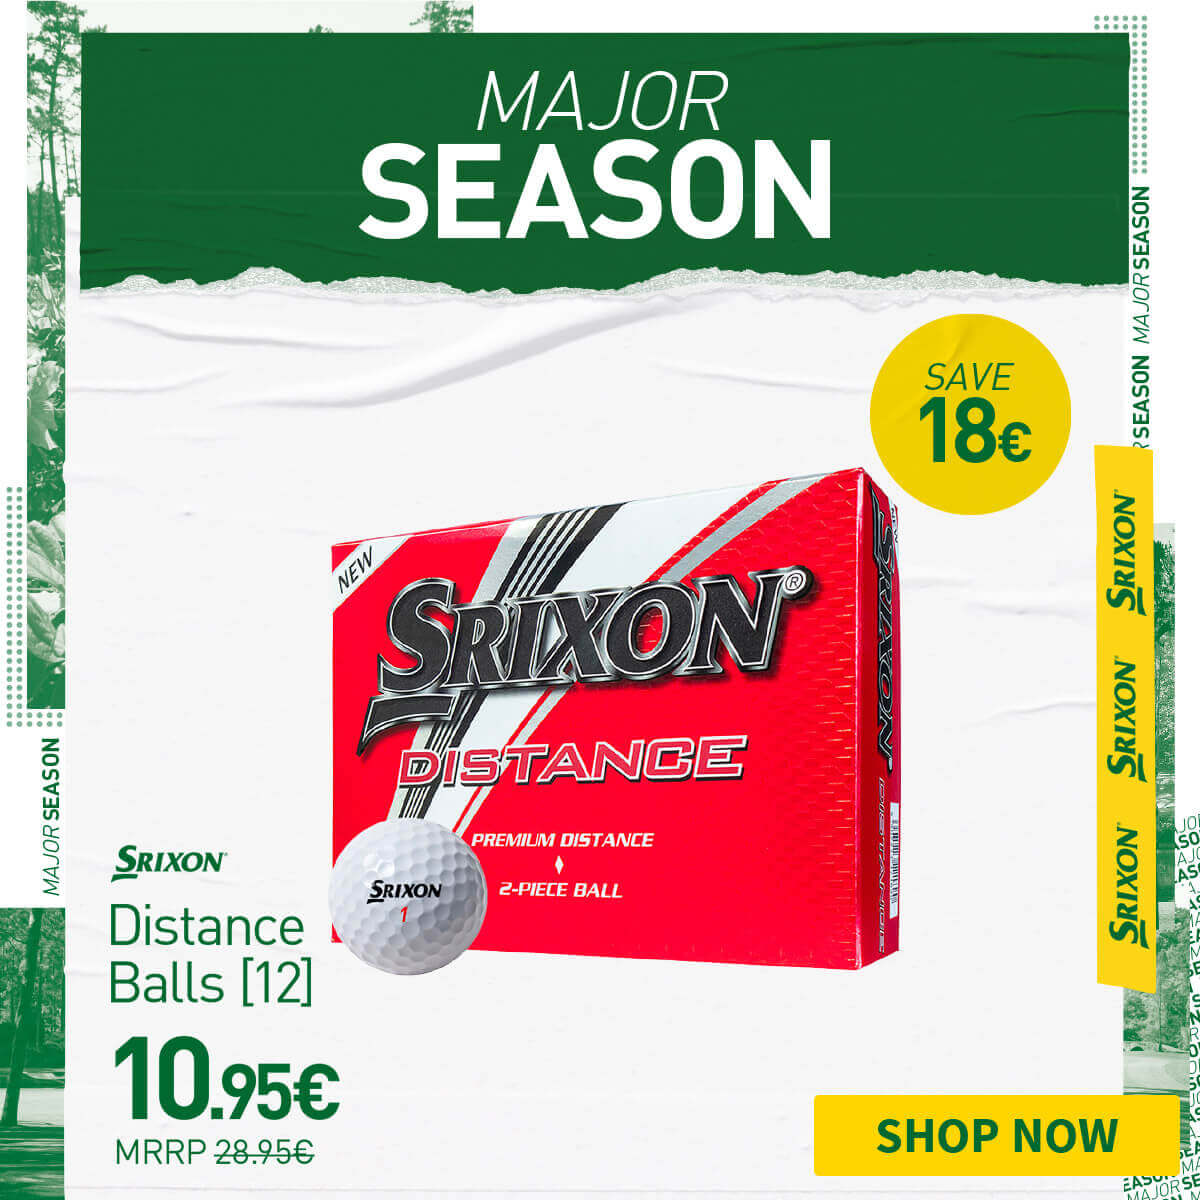 SRIXON DISTANCE BALLS 12 PACK - ONLY £9.99